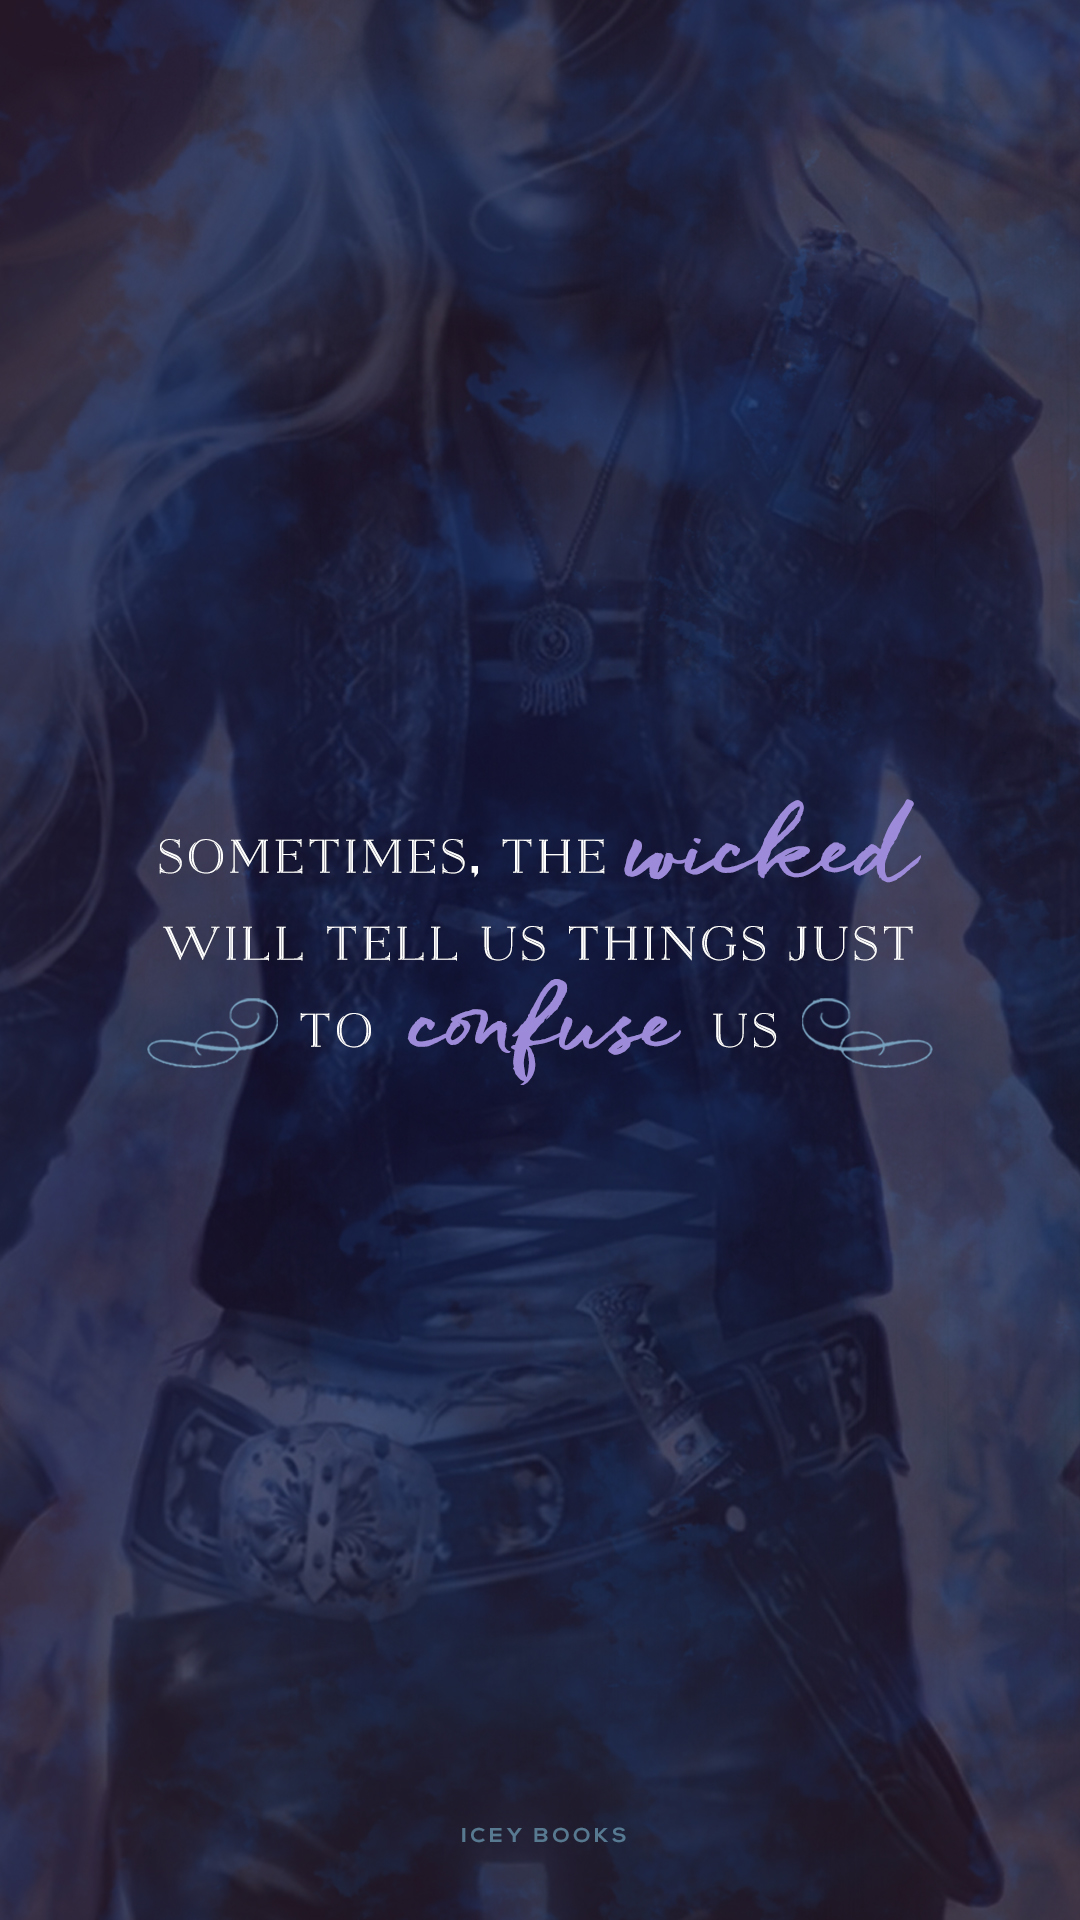 Quote Candy 41 Download A Wallpaper For THRONE OF GLASS By Sarah